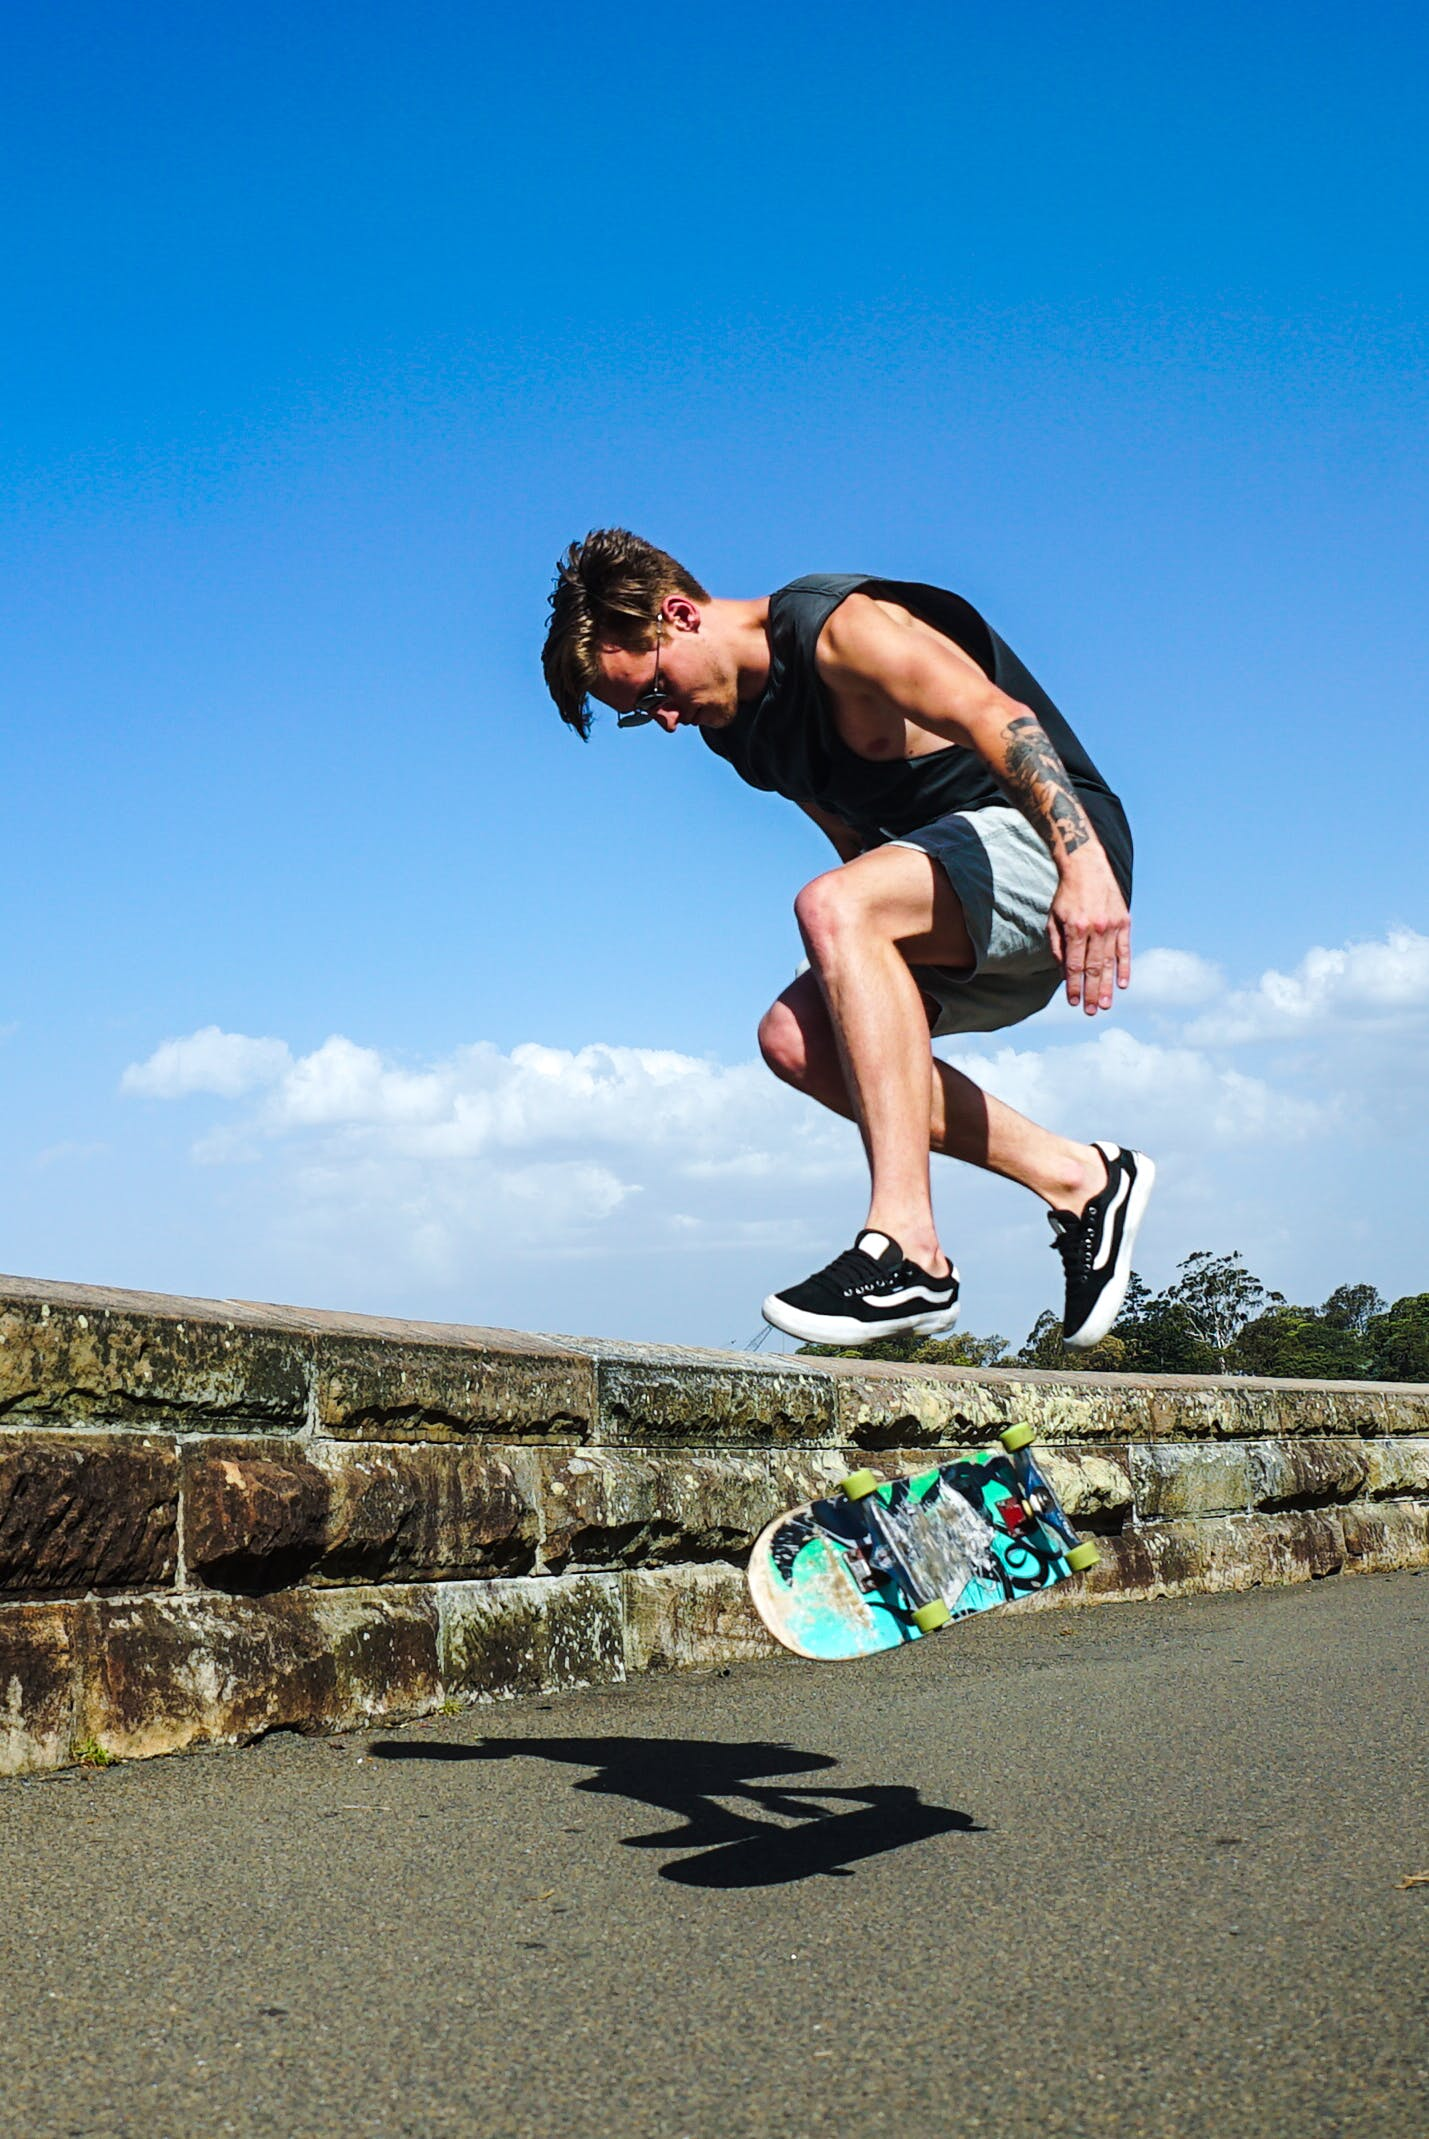 Jumping Man Together With Blue Skateboard